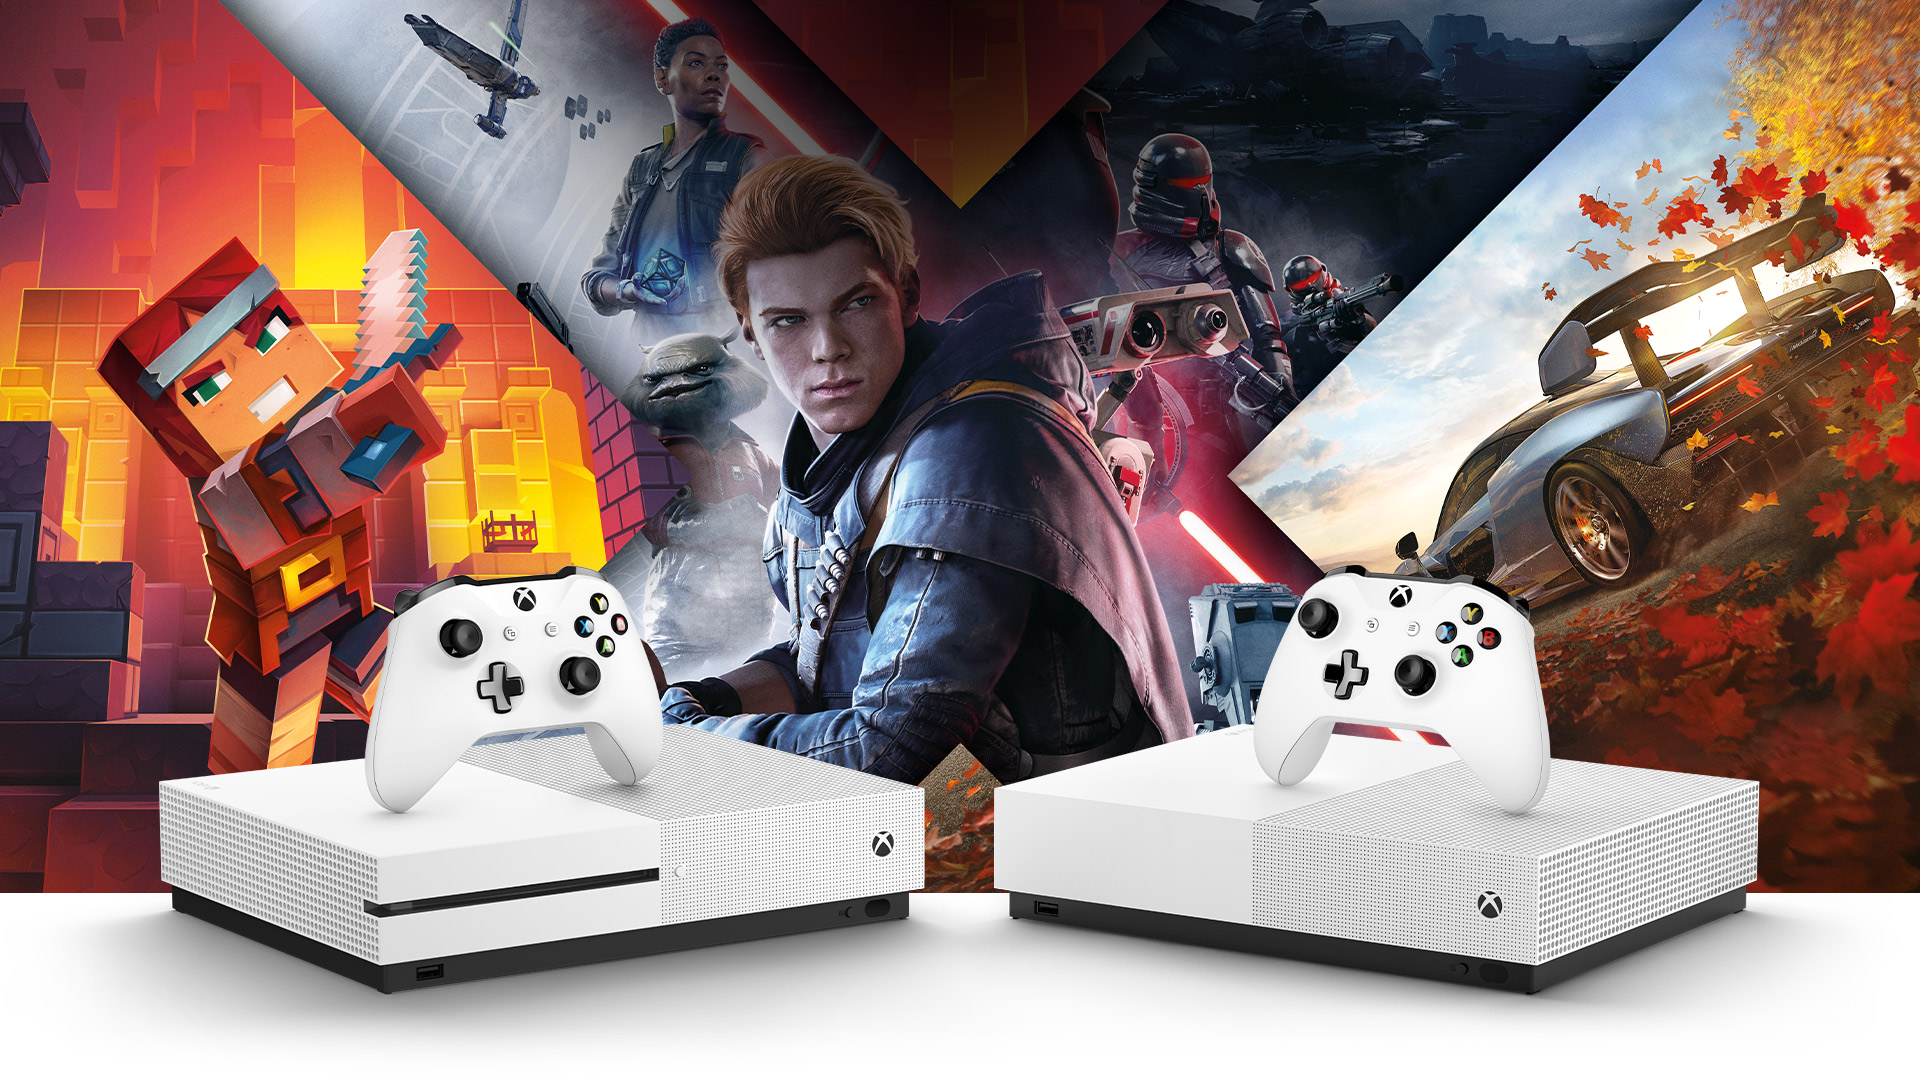 Vista frontal do Xbox One S e do Xbox One S All Digital Edition cercado pela arte do Minecraft, Forza Horizon 4, Star Wars Jedi Fallen Order